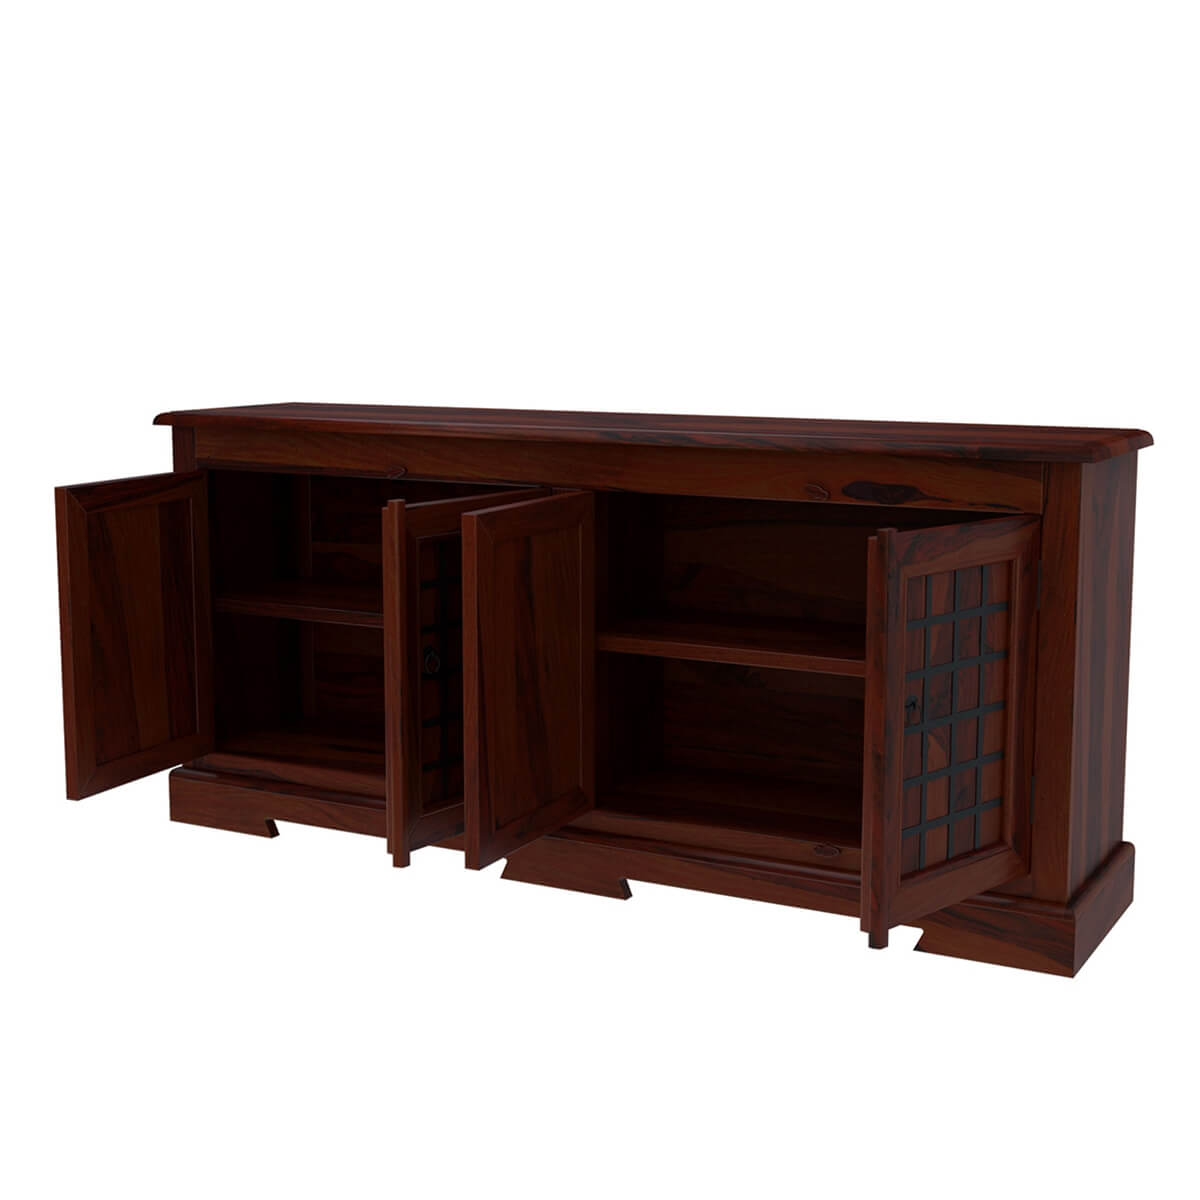 Wrought Iron And Wood Sideboards ~ Sierra door sideboard solid wood buffet cabinet w